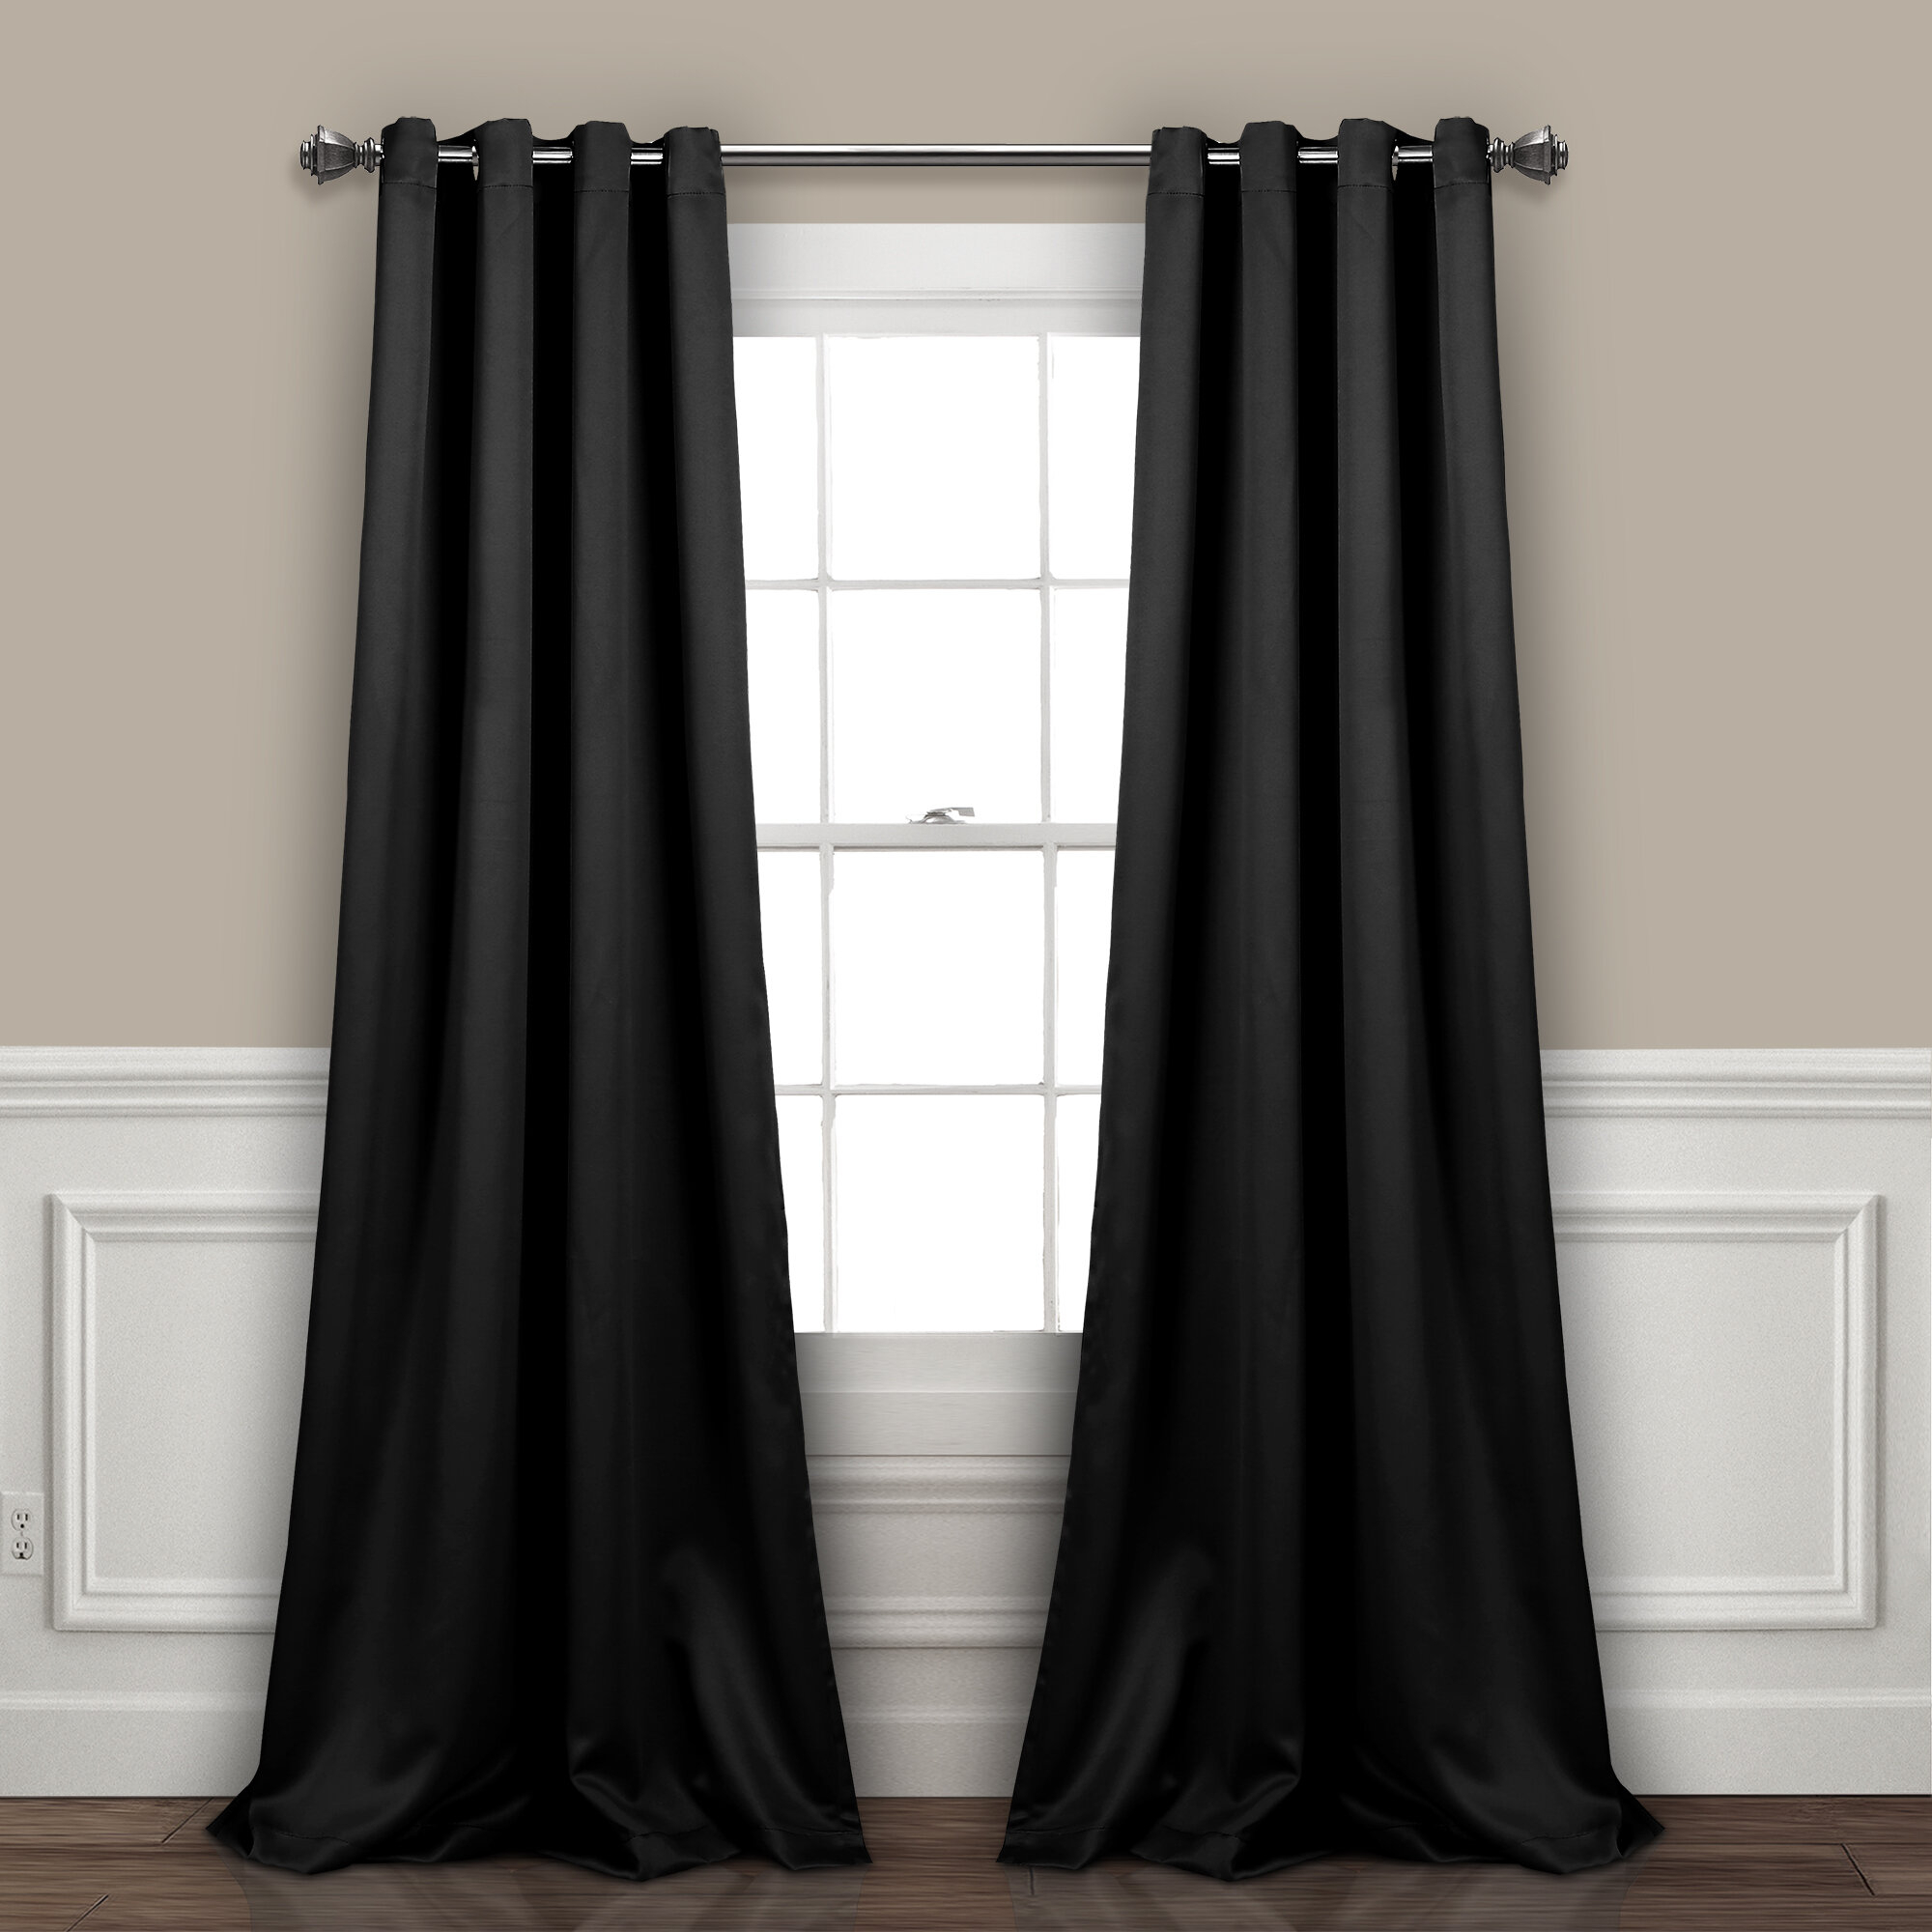 Ketterman Solid Thermal Blackout Grommet Window Panel Pair Throughout Solid Thermal Insulated Blackout Curtain Panel Pairs (View 20 of 30)